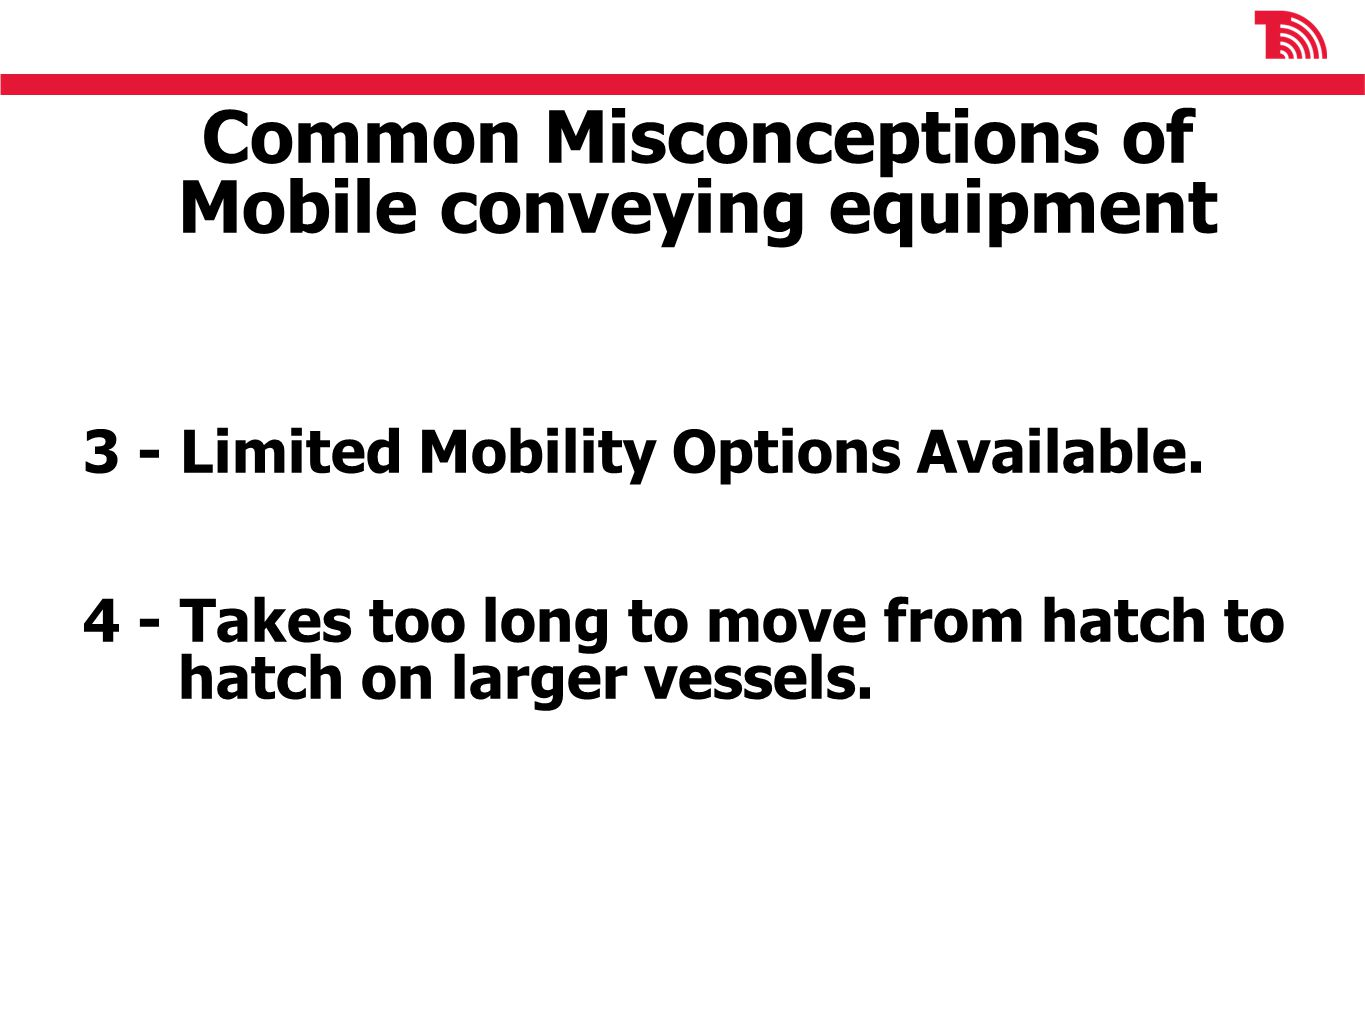 Common Misconceptions of Mobile conveying equipment 3 - Limited Mobility Options Available.